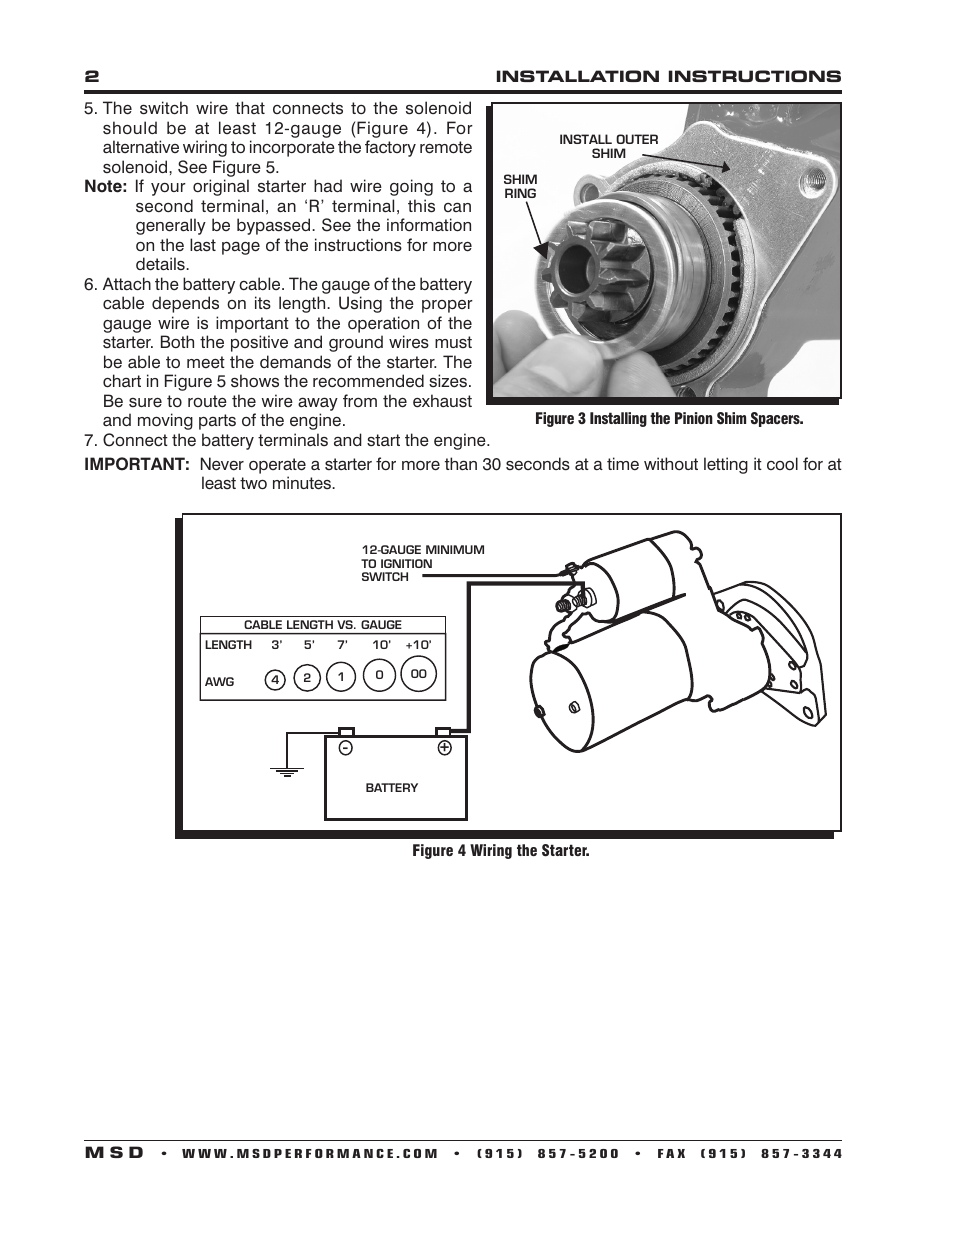 Msd 5093 Dynaforce Starter Ford Fe 390 427 428 Engines 7 3 Wiring Diagram Installation User Manual Page 2 4